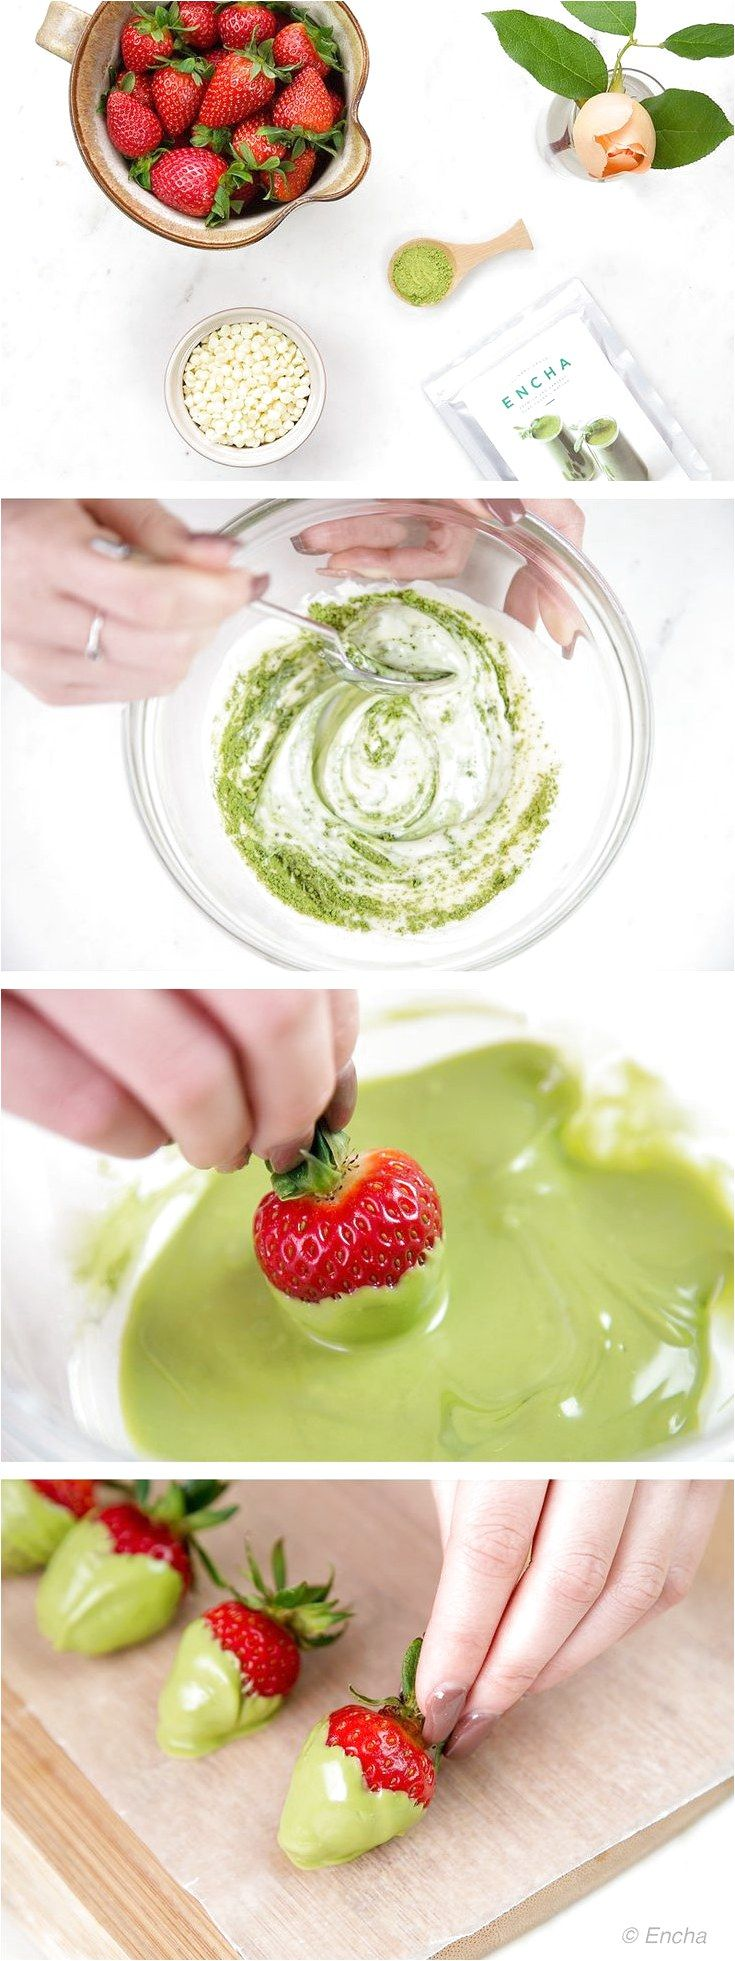 Matcha recipe matcha chocolate-dipped strawberries with culinary-grade Encha Organic Matcha #FruitSmoothieIdeas click to see more... #chocolatestrawberrysmoothie